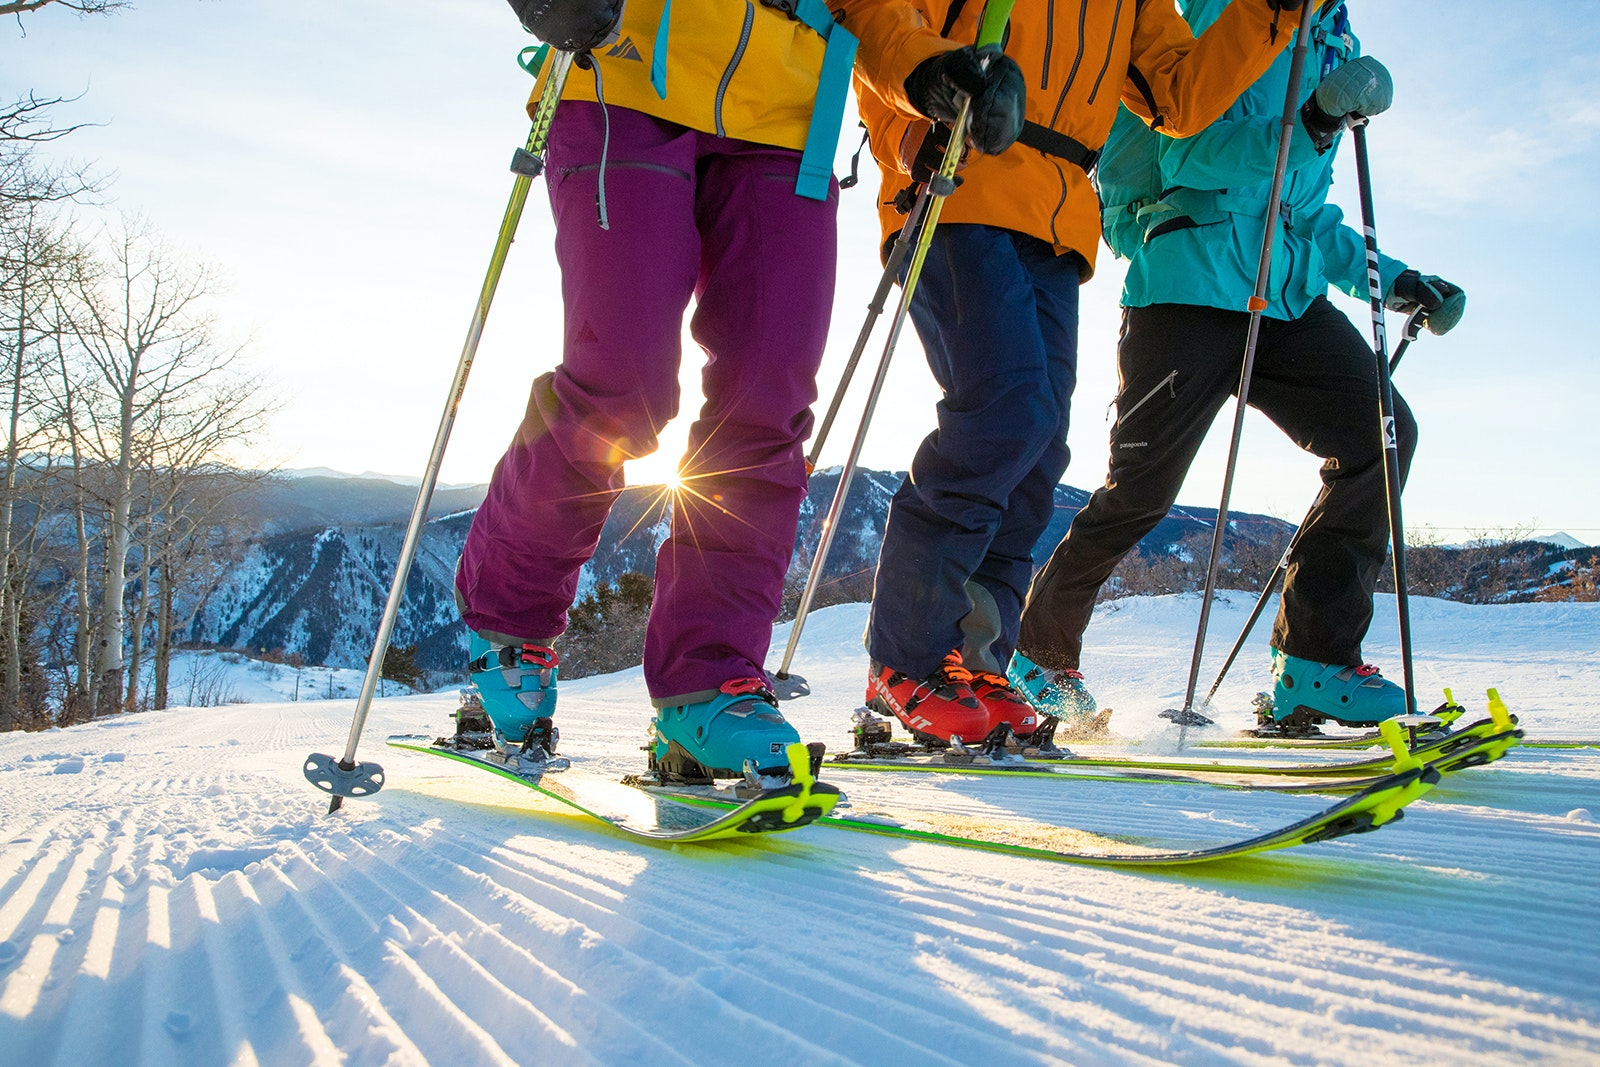 Uphill Skiing Is The Latest Trend In Snow Sports